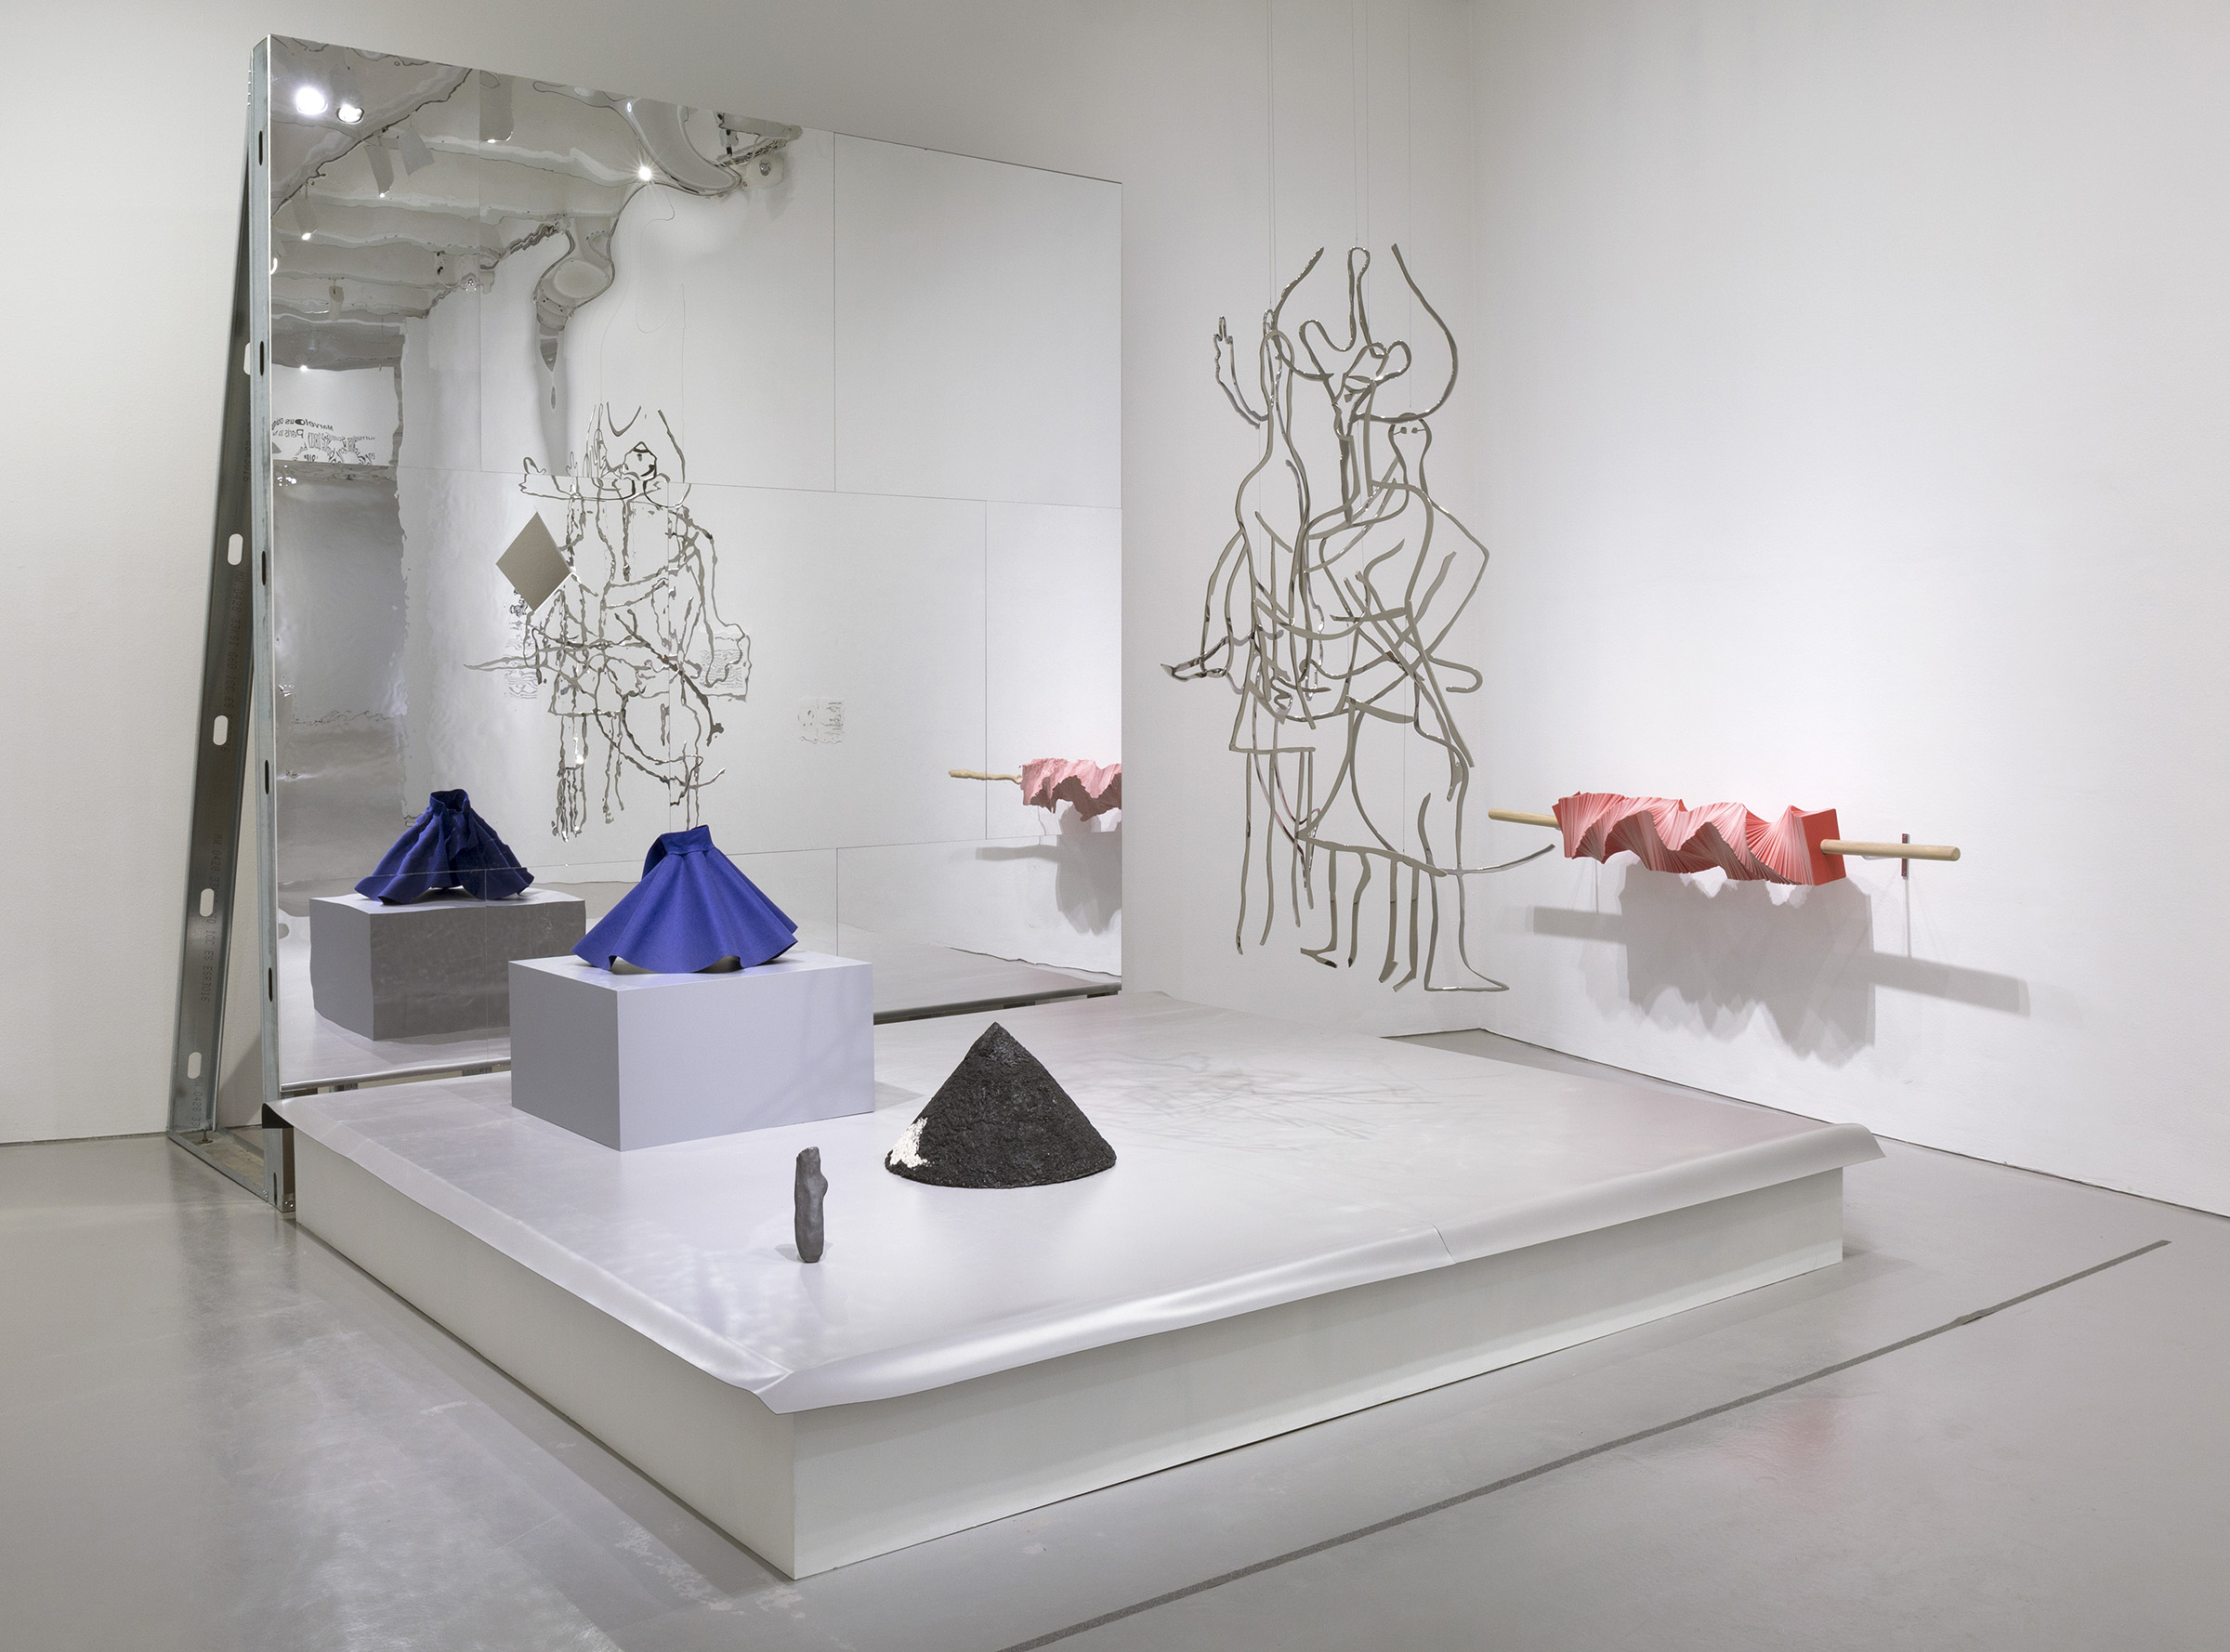 Shana Lutker installation view